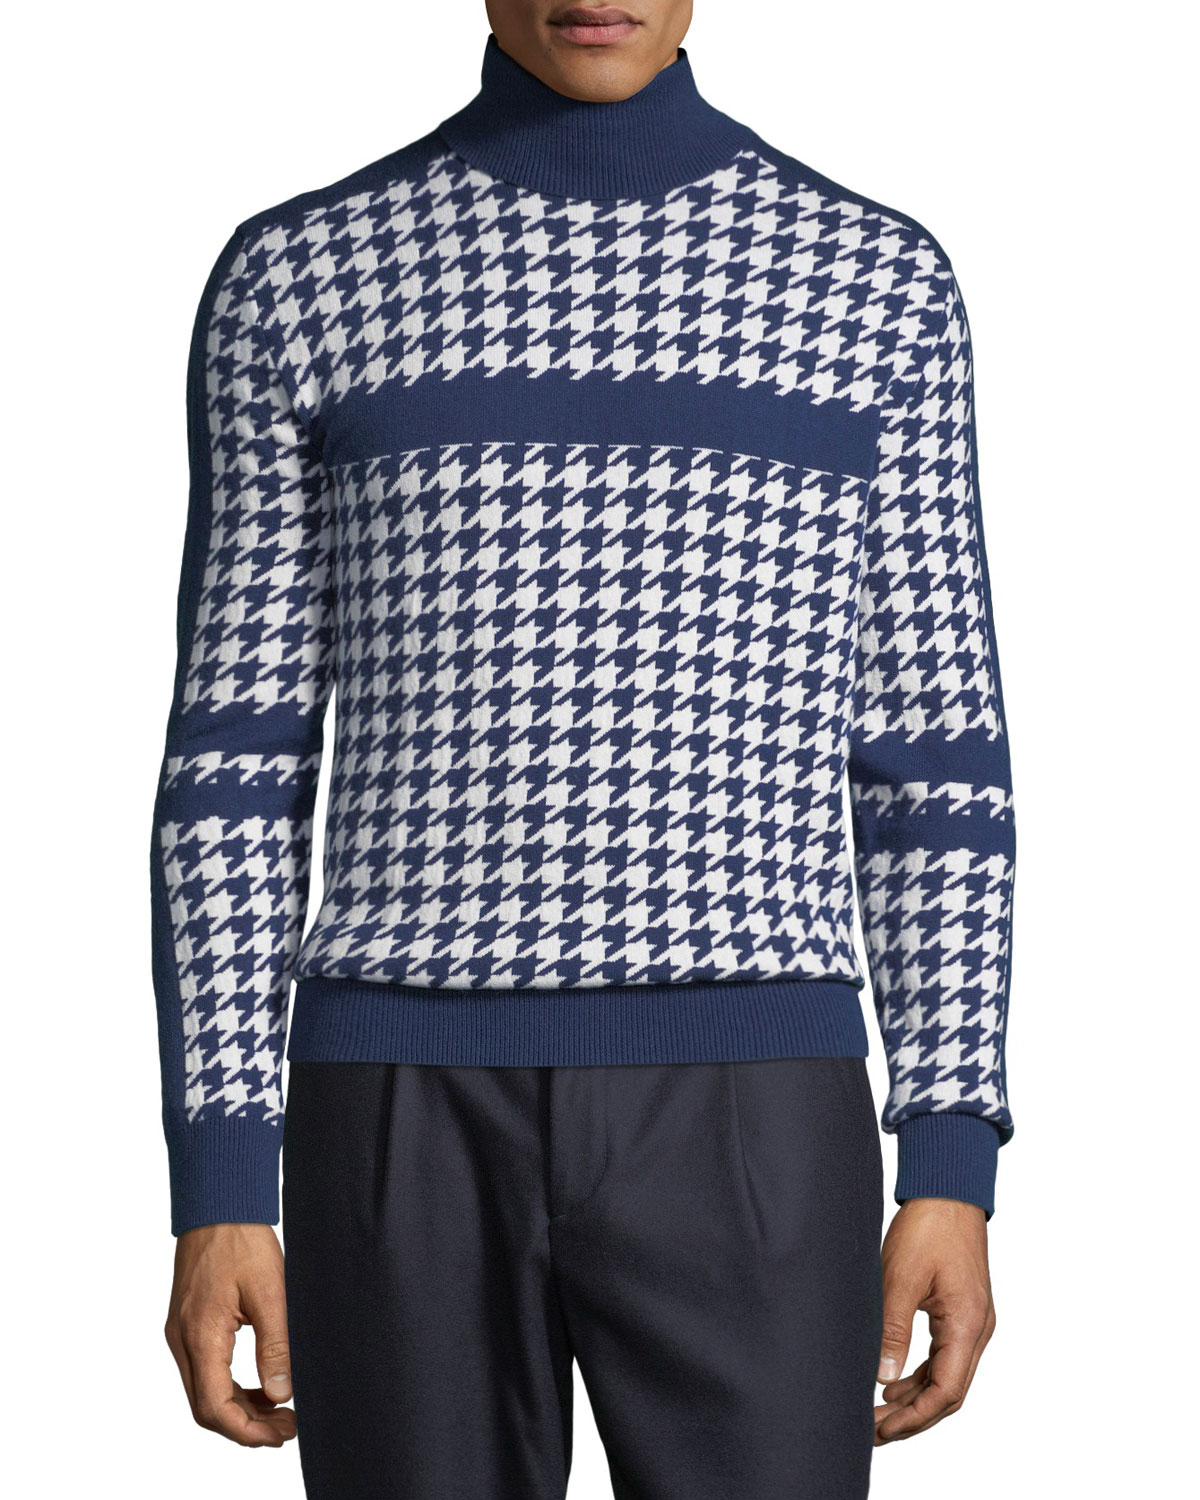 Men's Houndstooth Cashmere Turtleneck Sweater by Stefano Ricci